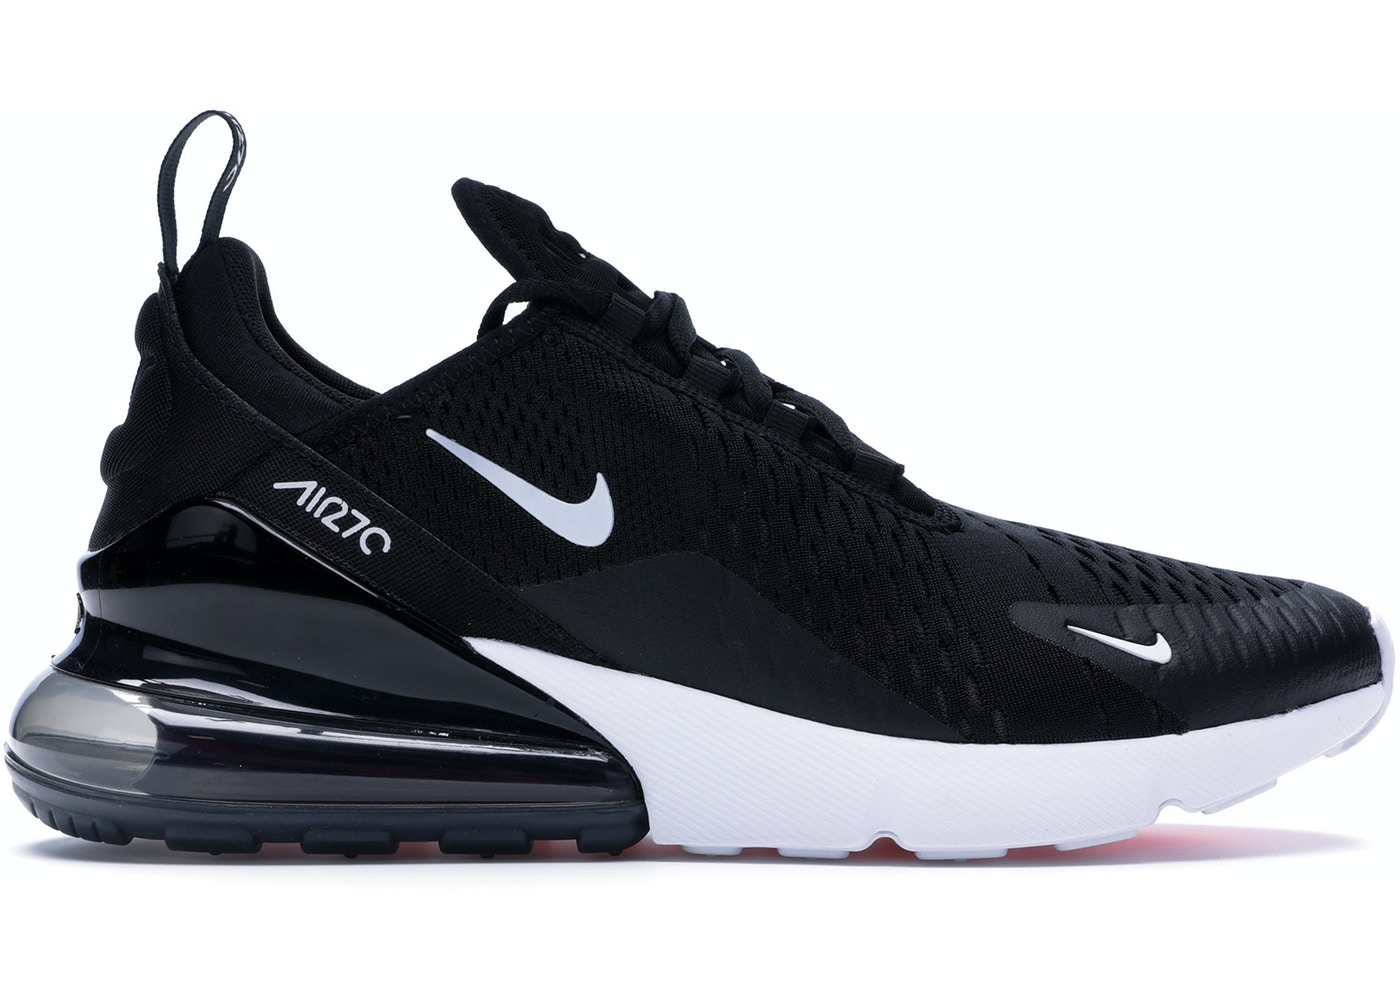 pre order dirt cheap los angeles Buy Nike Air Max 270 Shoes & Deadstock Sneakers